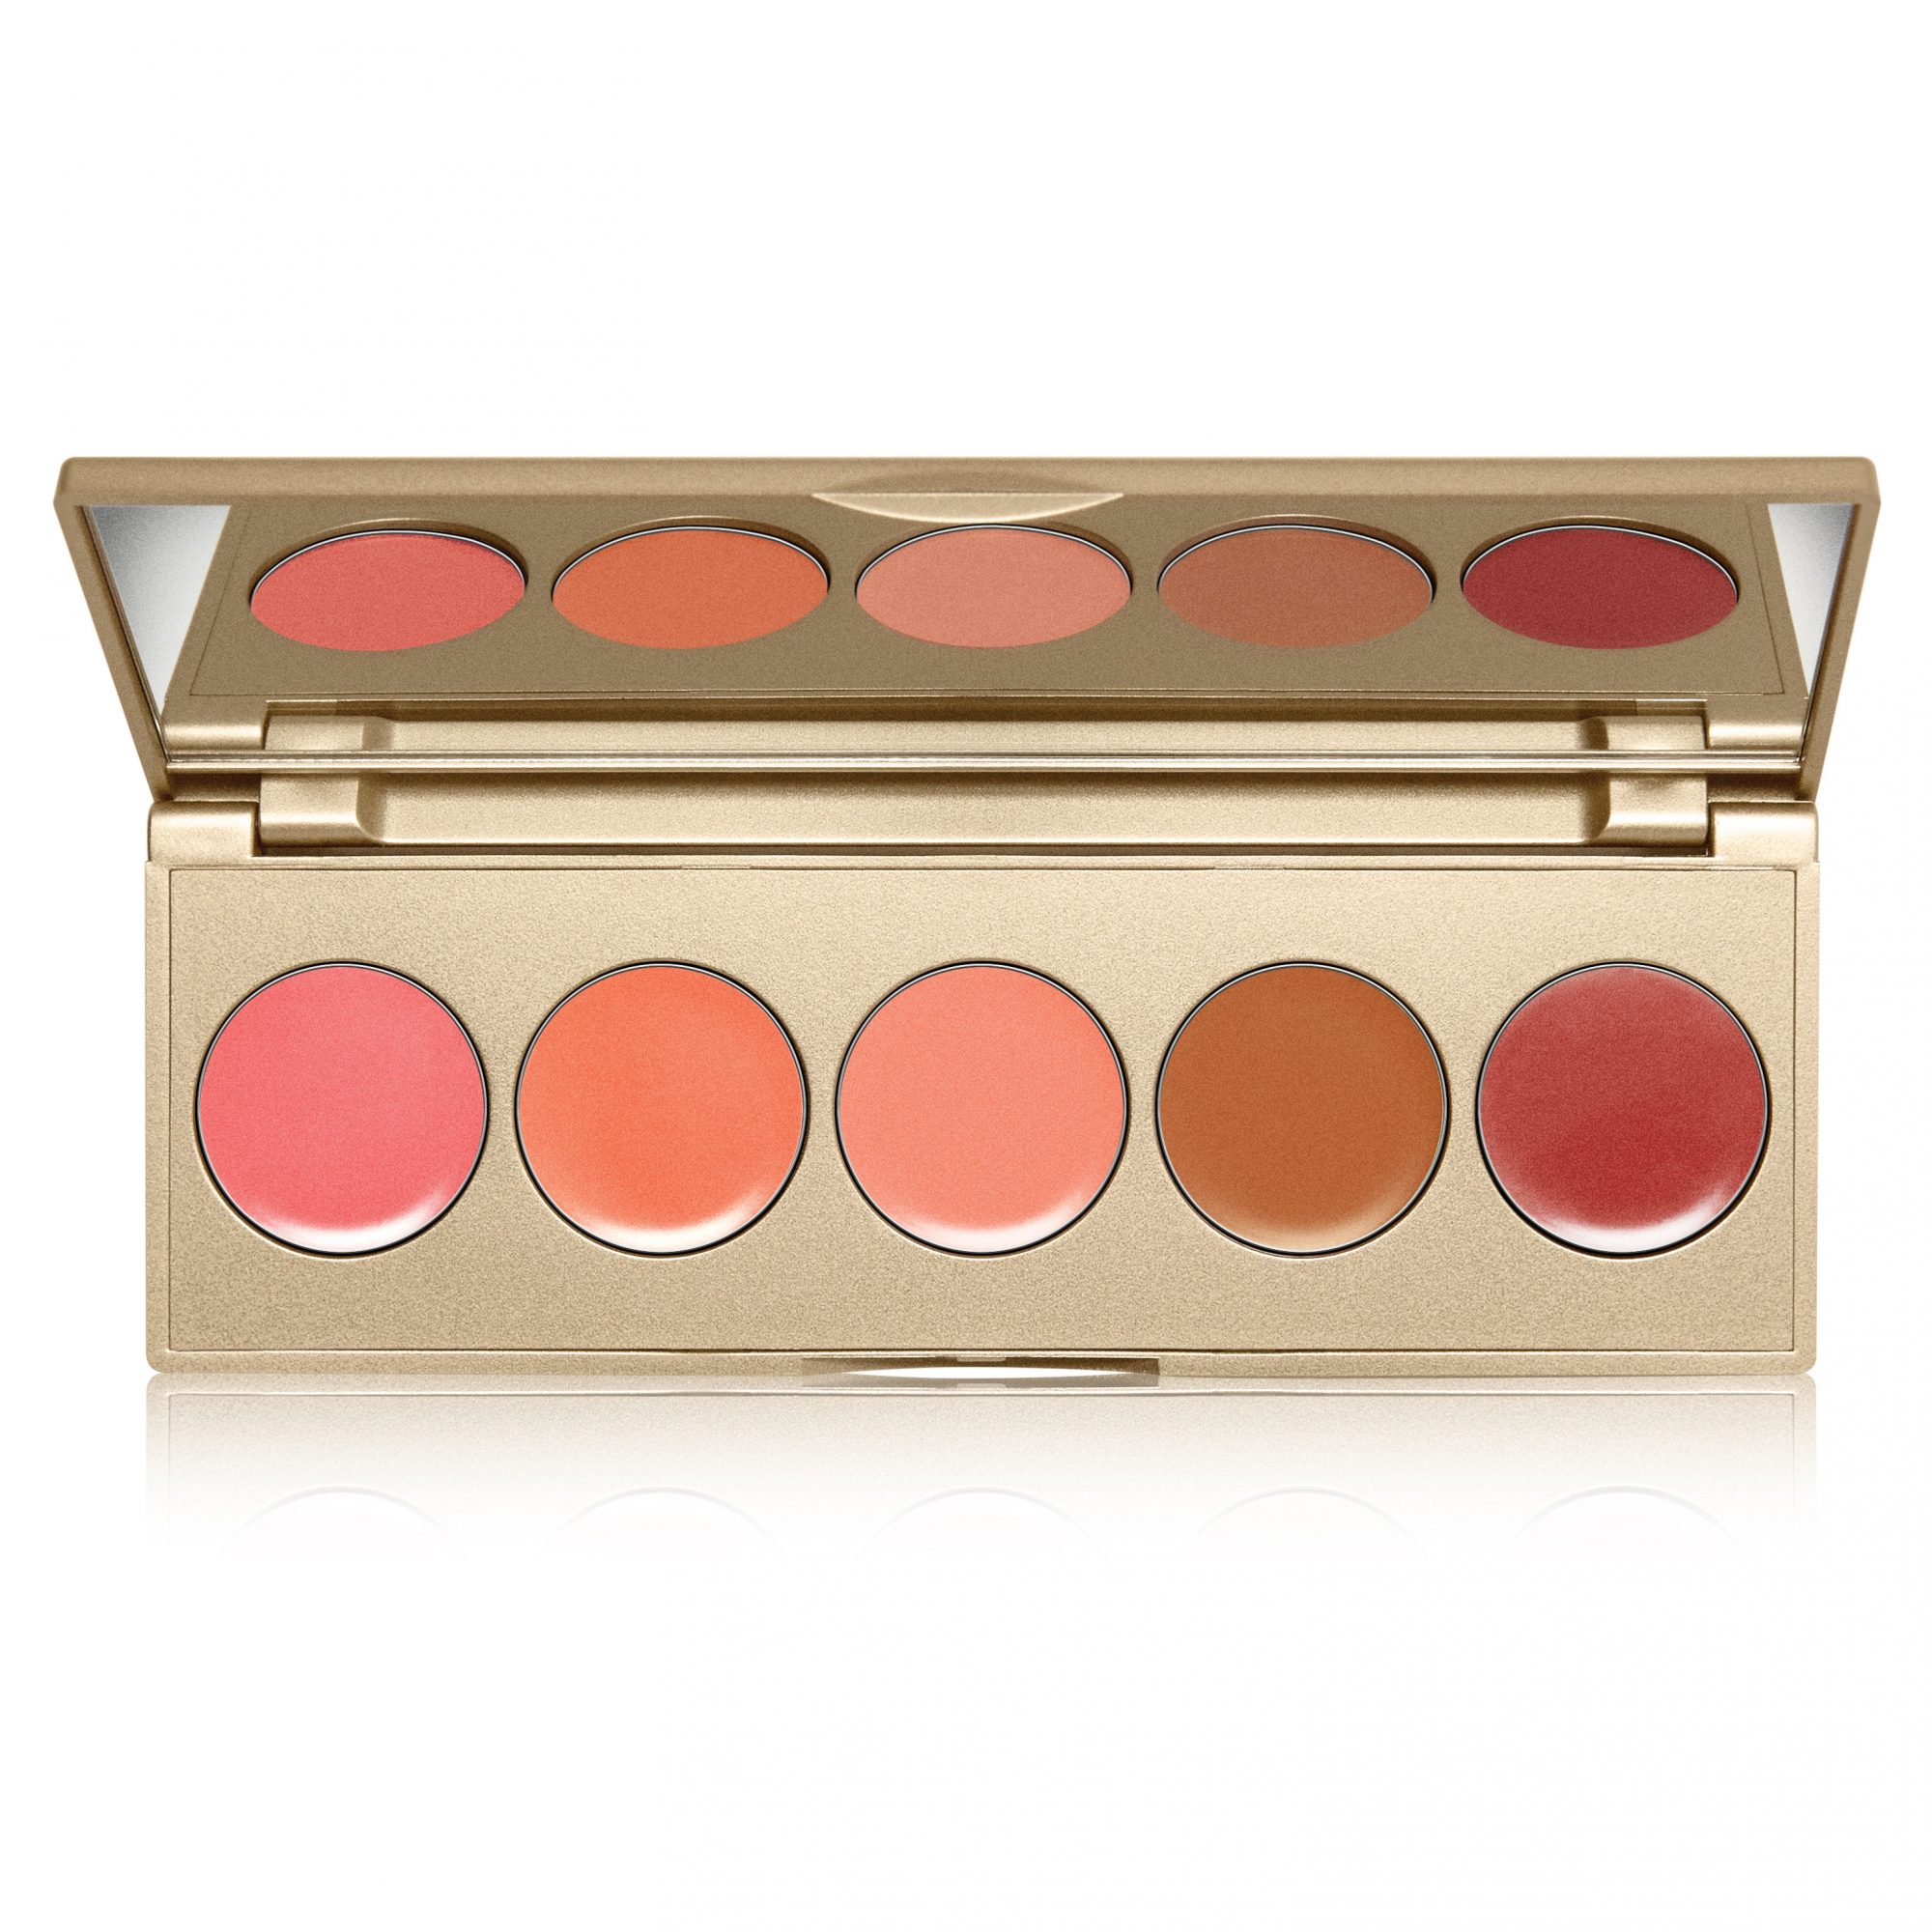 Stila Cosmetics Convertible Color Dual Lip & Cheek Palette